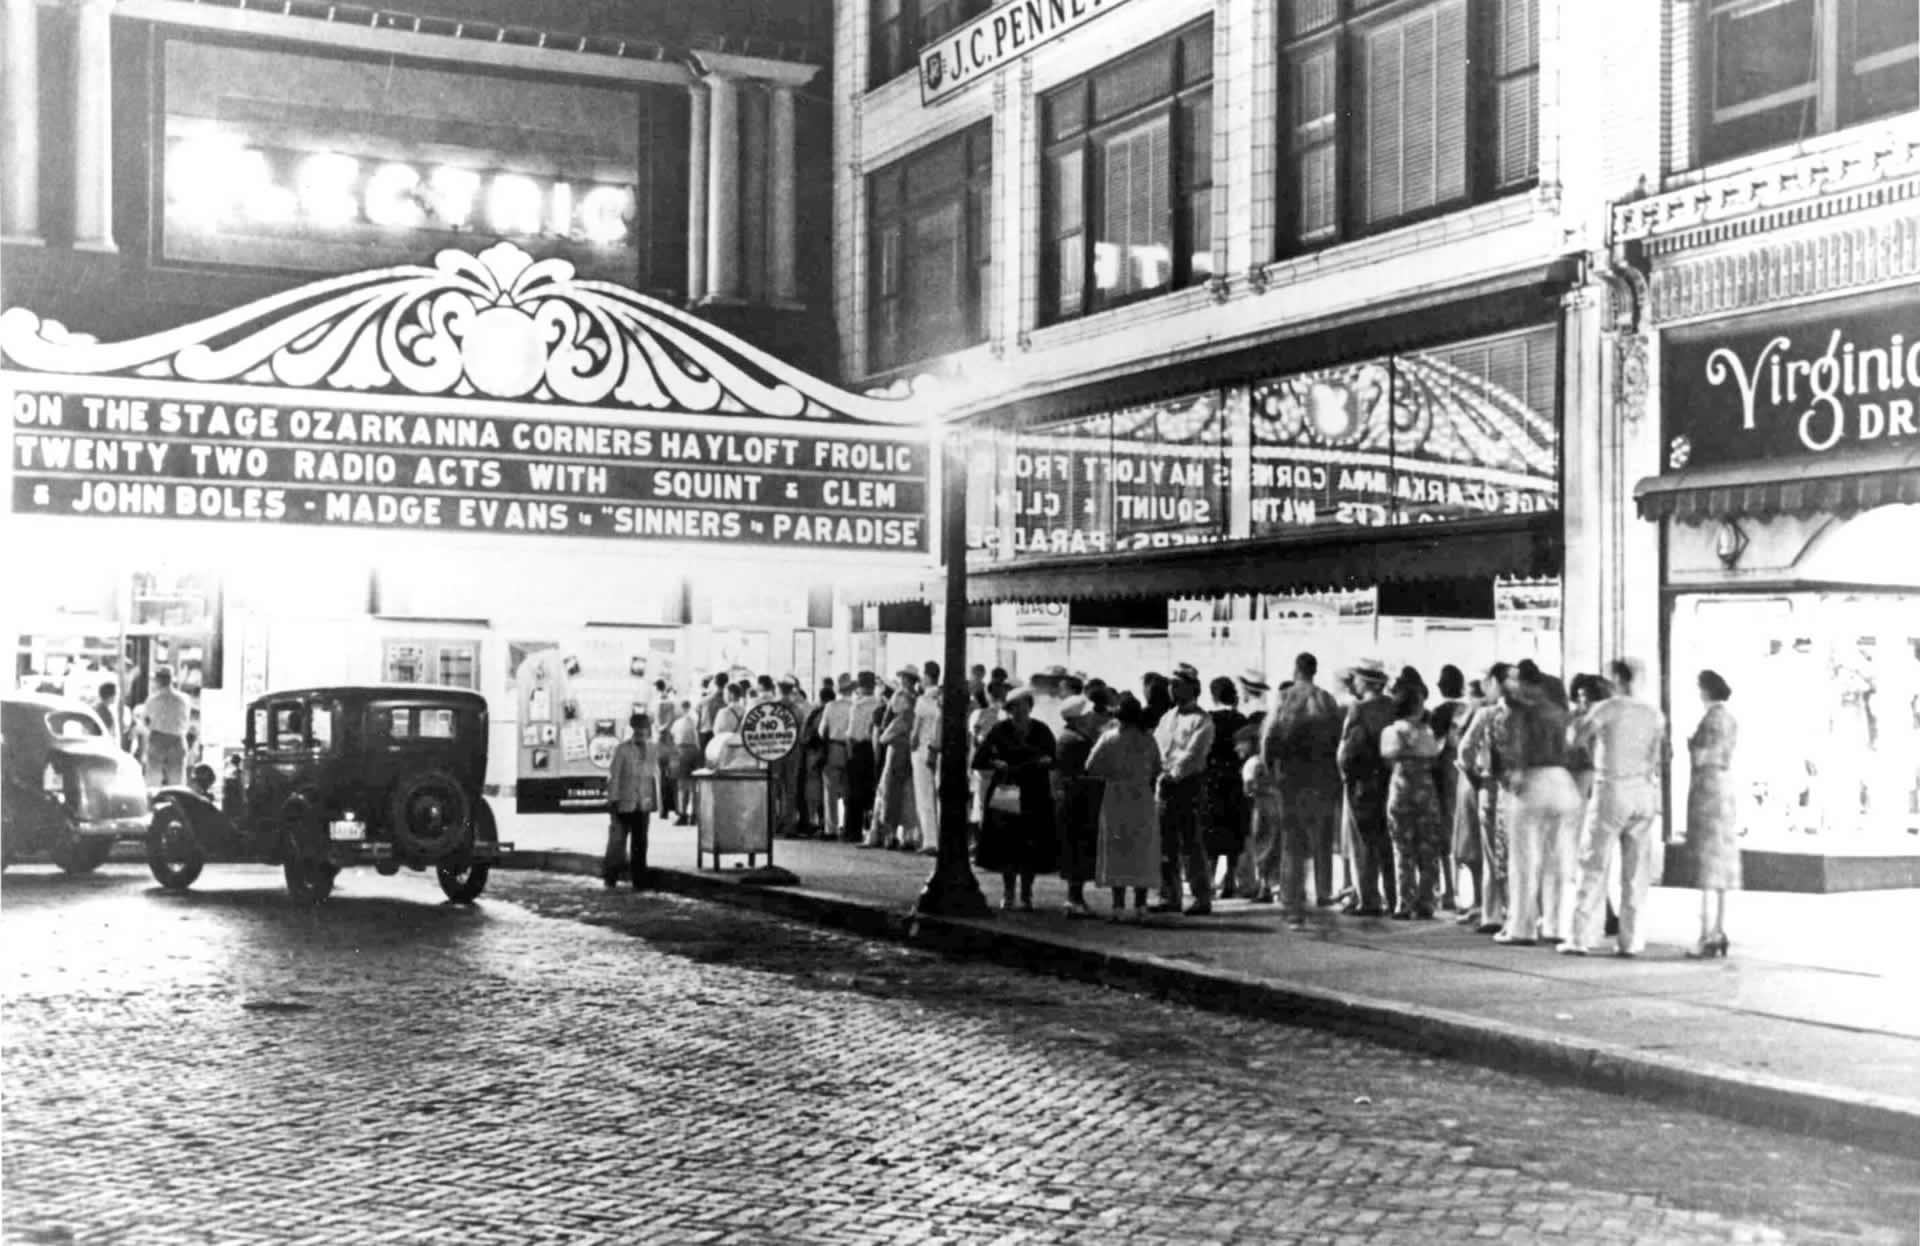 1930 Electric Theatre